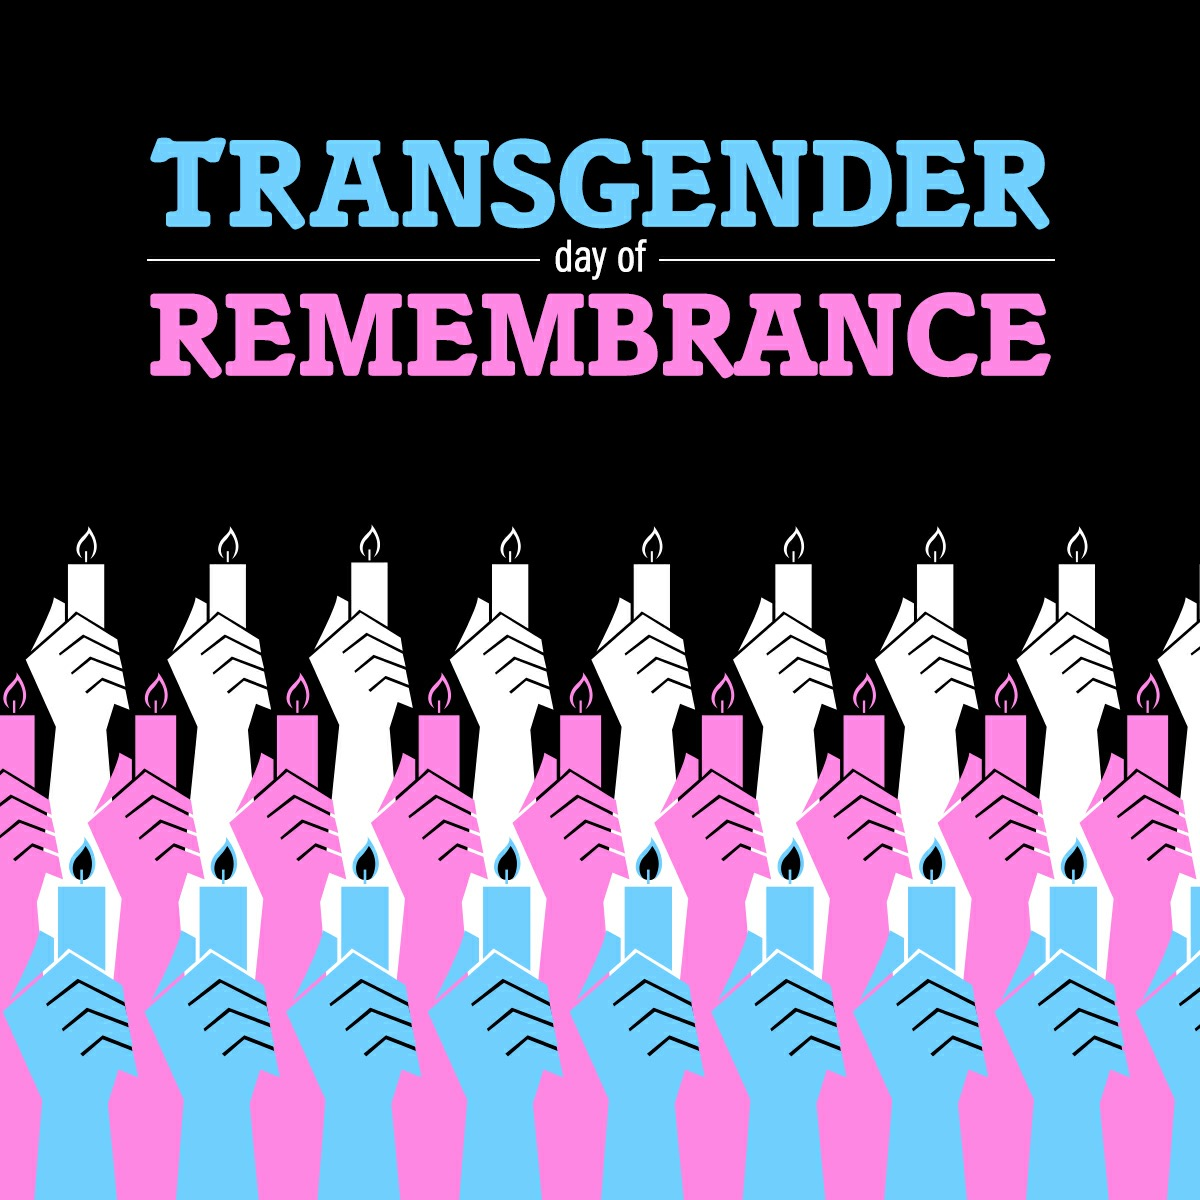 Transgender Day of Remembrance recognizes lost lives, living strength